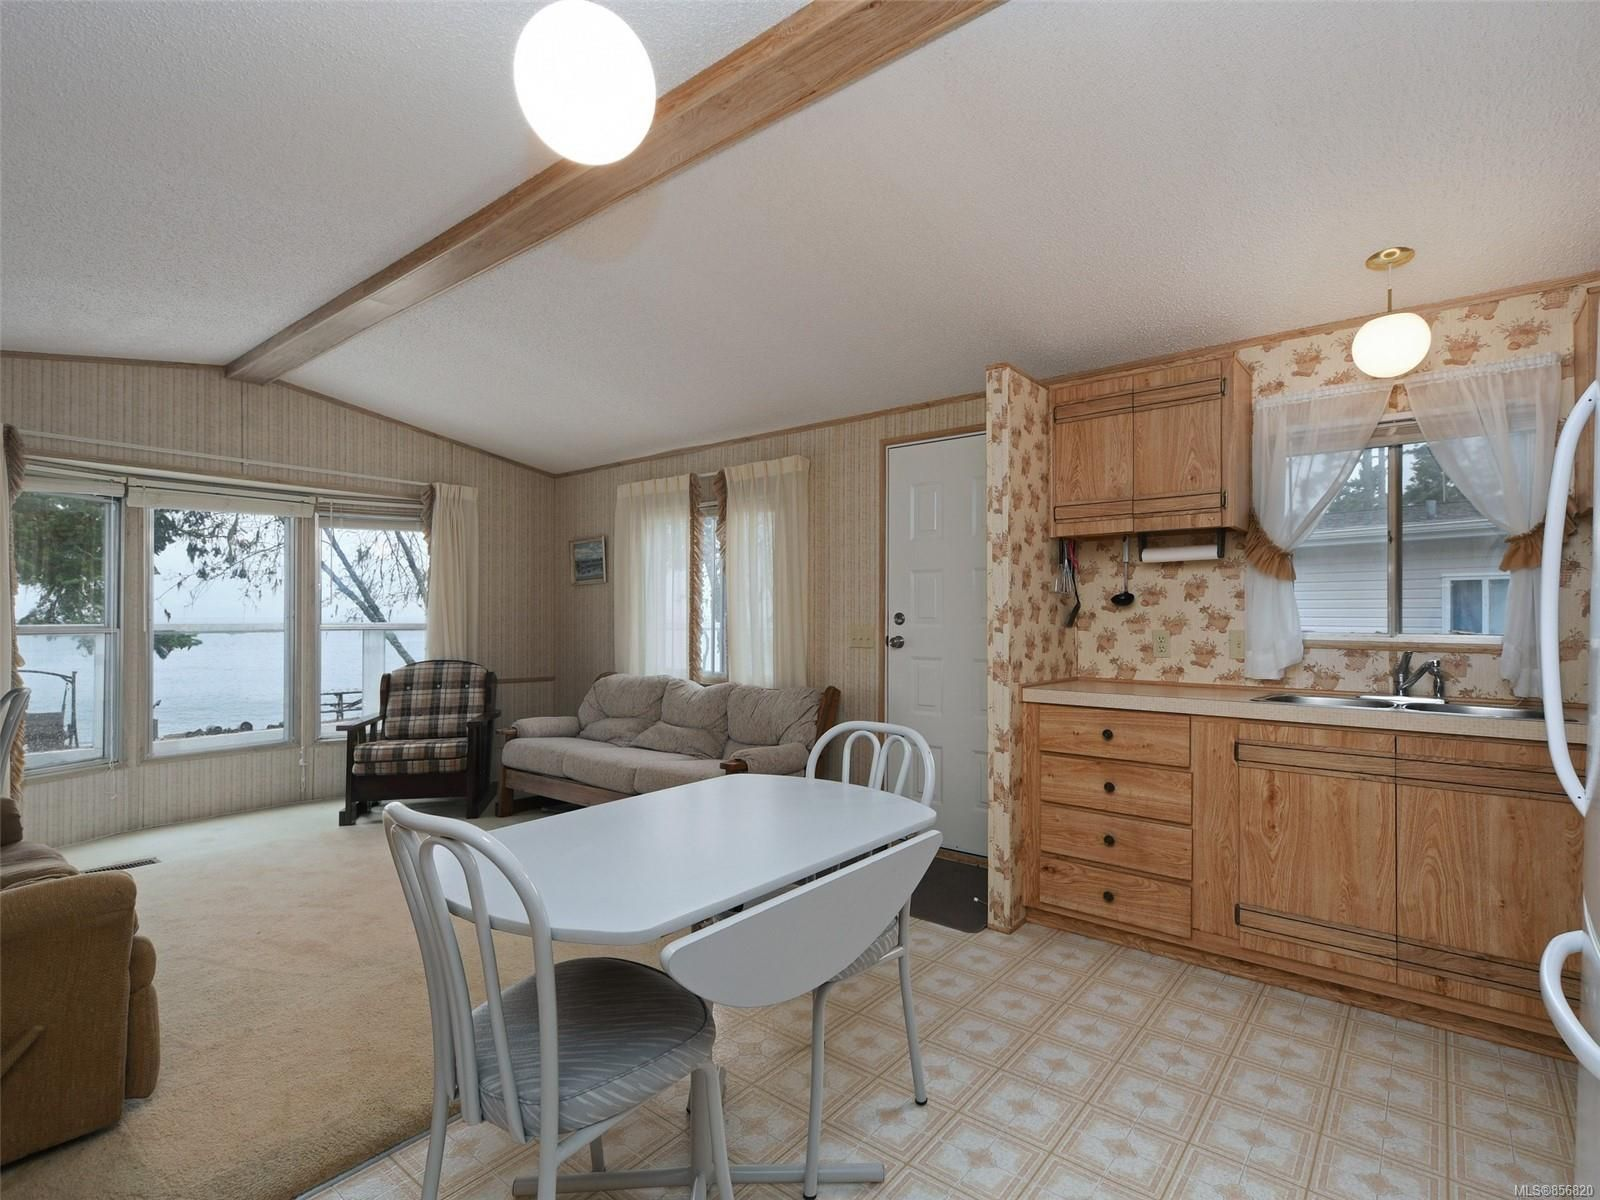 Photo 9: Photos: 25 7871 West Coast Rd in : Sk Kemp Lake Manufactured Home for sale (Sooke)  : MLS®# 856820